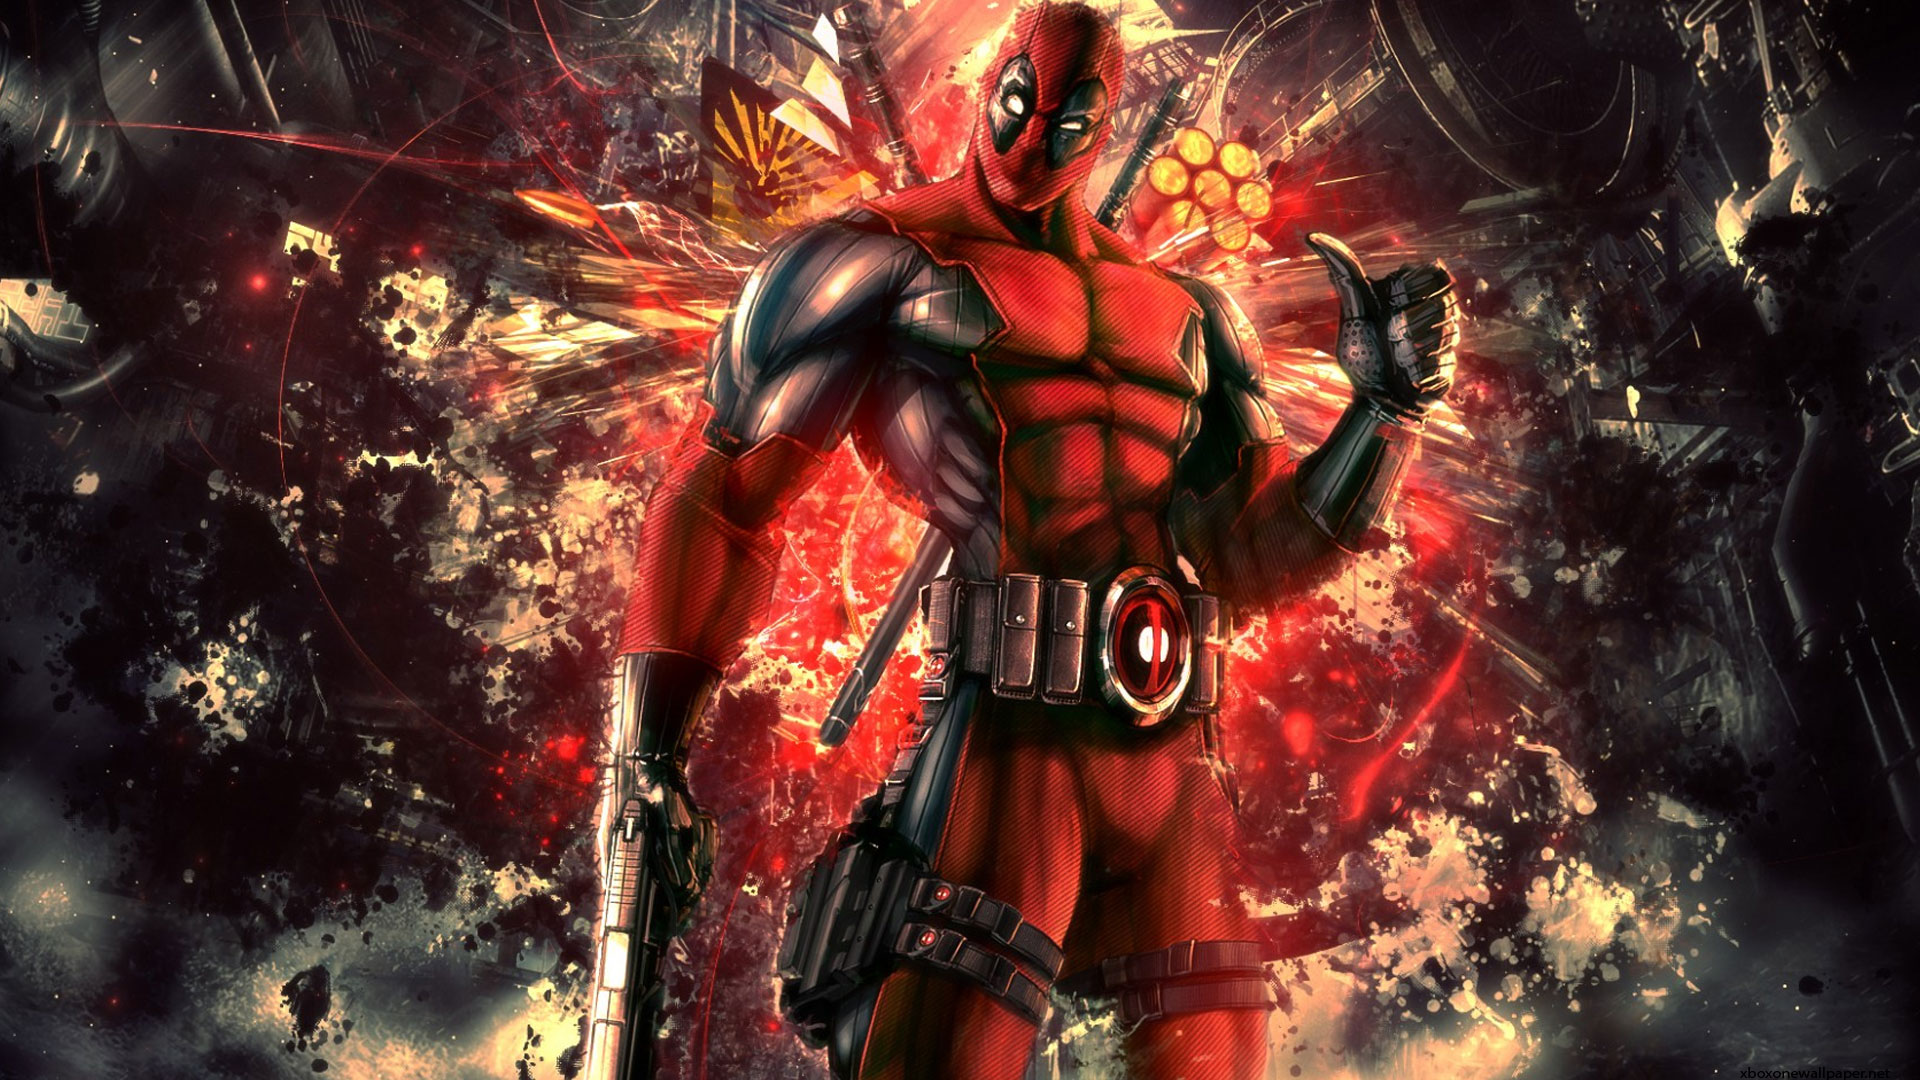 DeadPool Wade Wilson mercenary Wallpaper Game HD Wallpaper 1080p 1920x1080